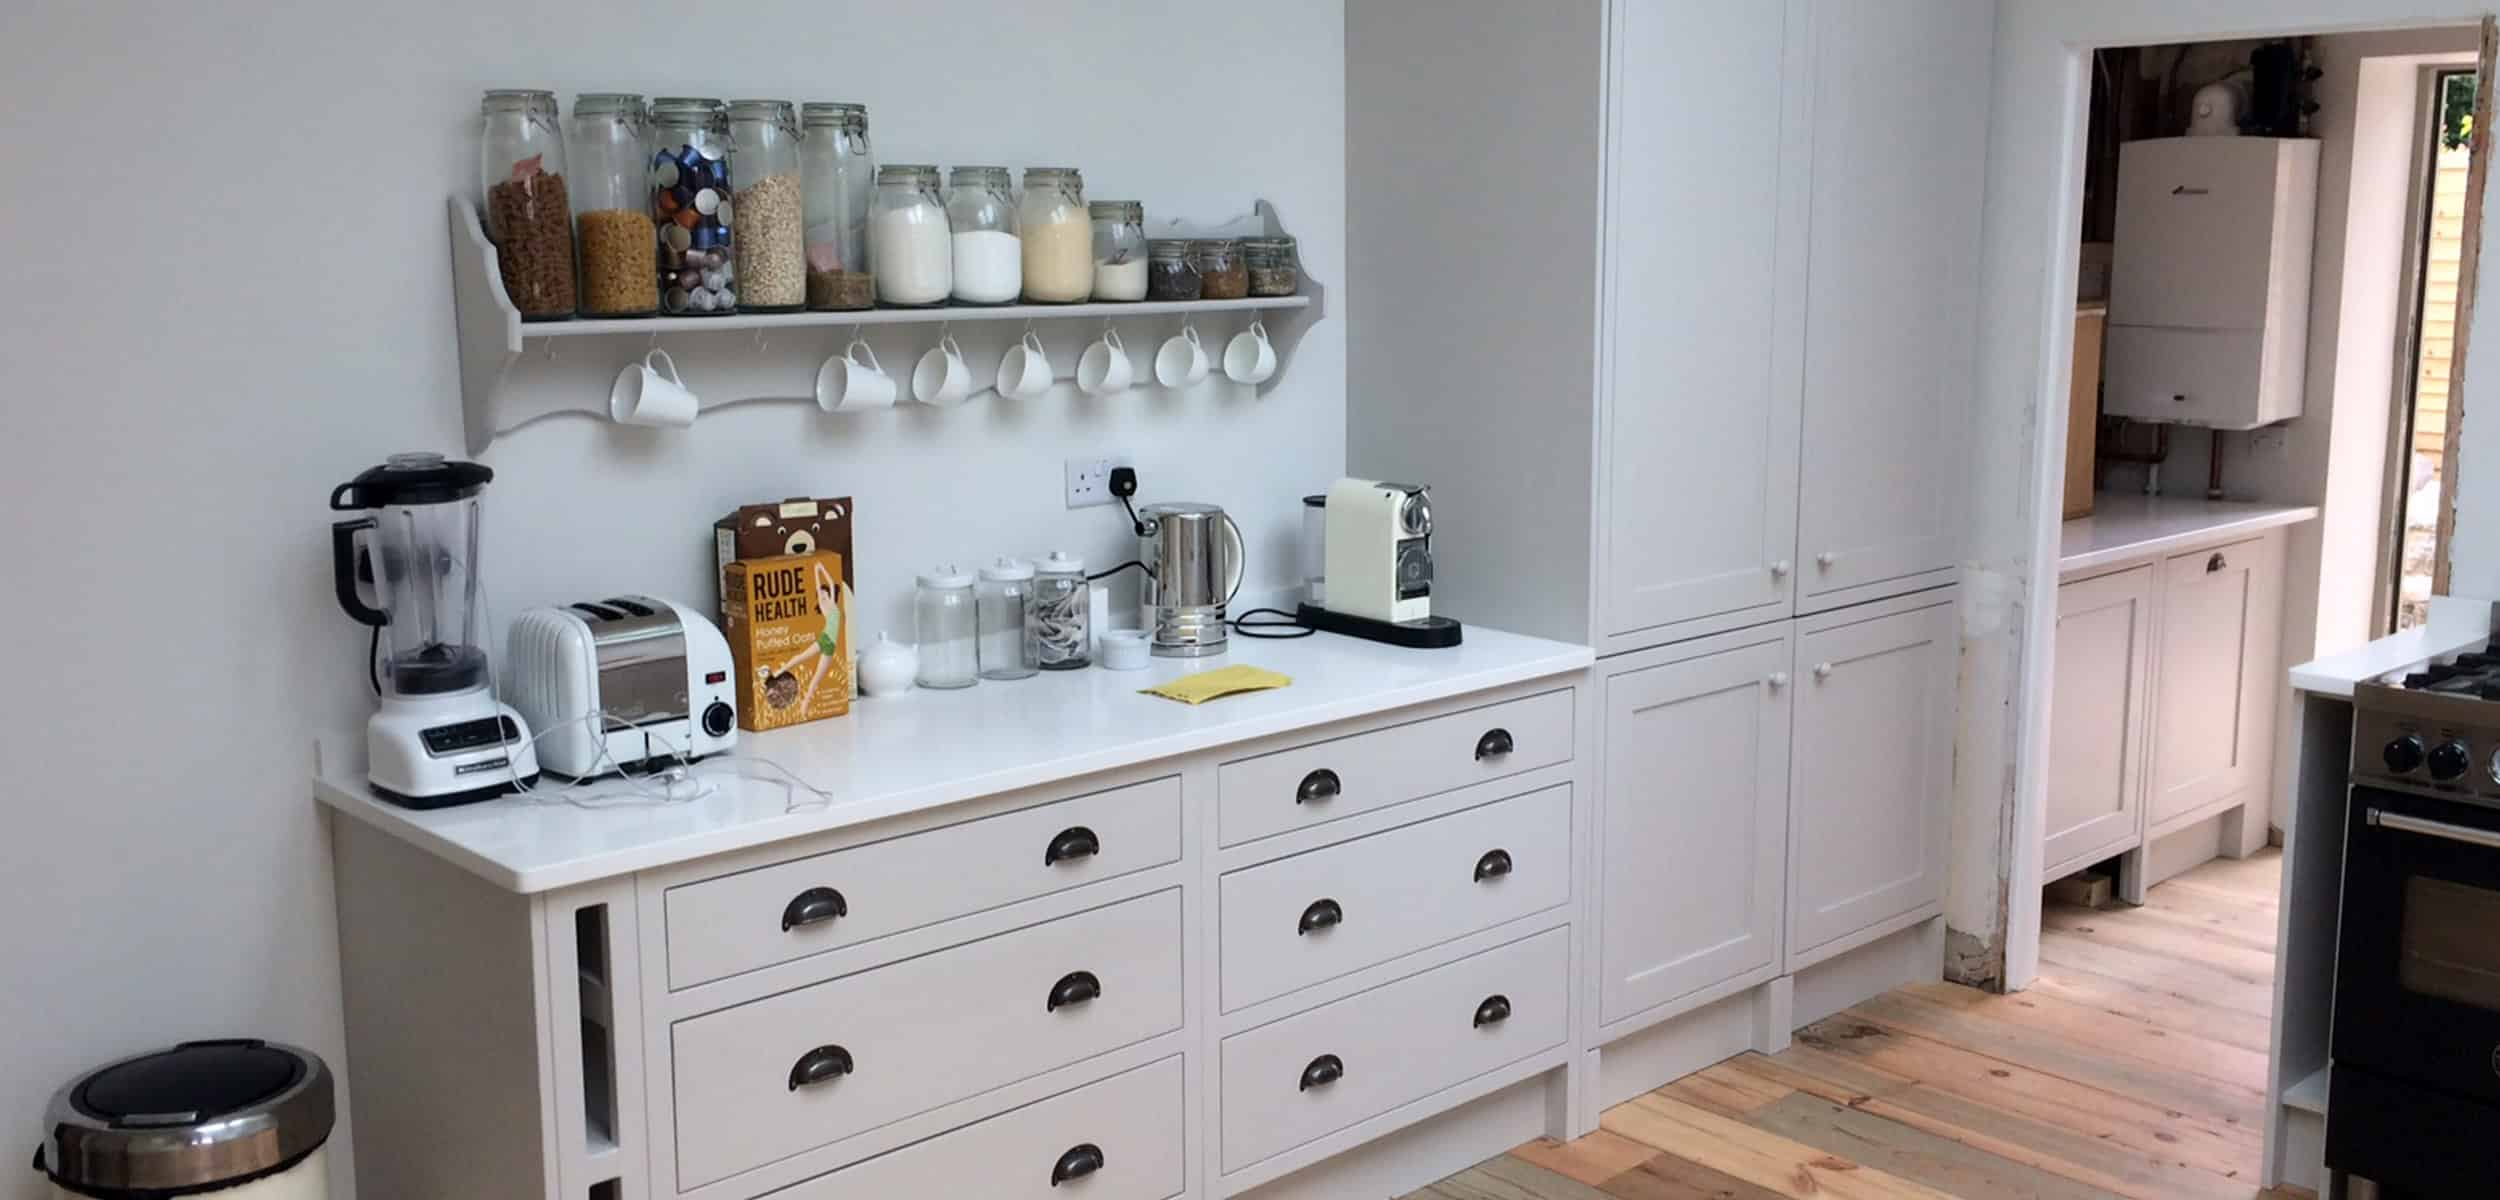 Edington Joinery Kitchen